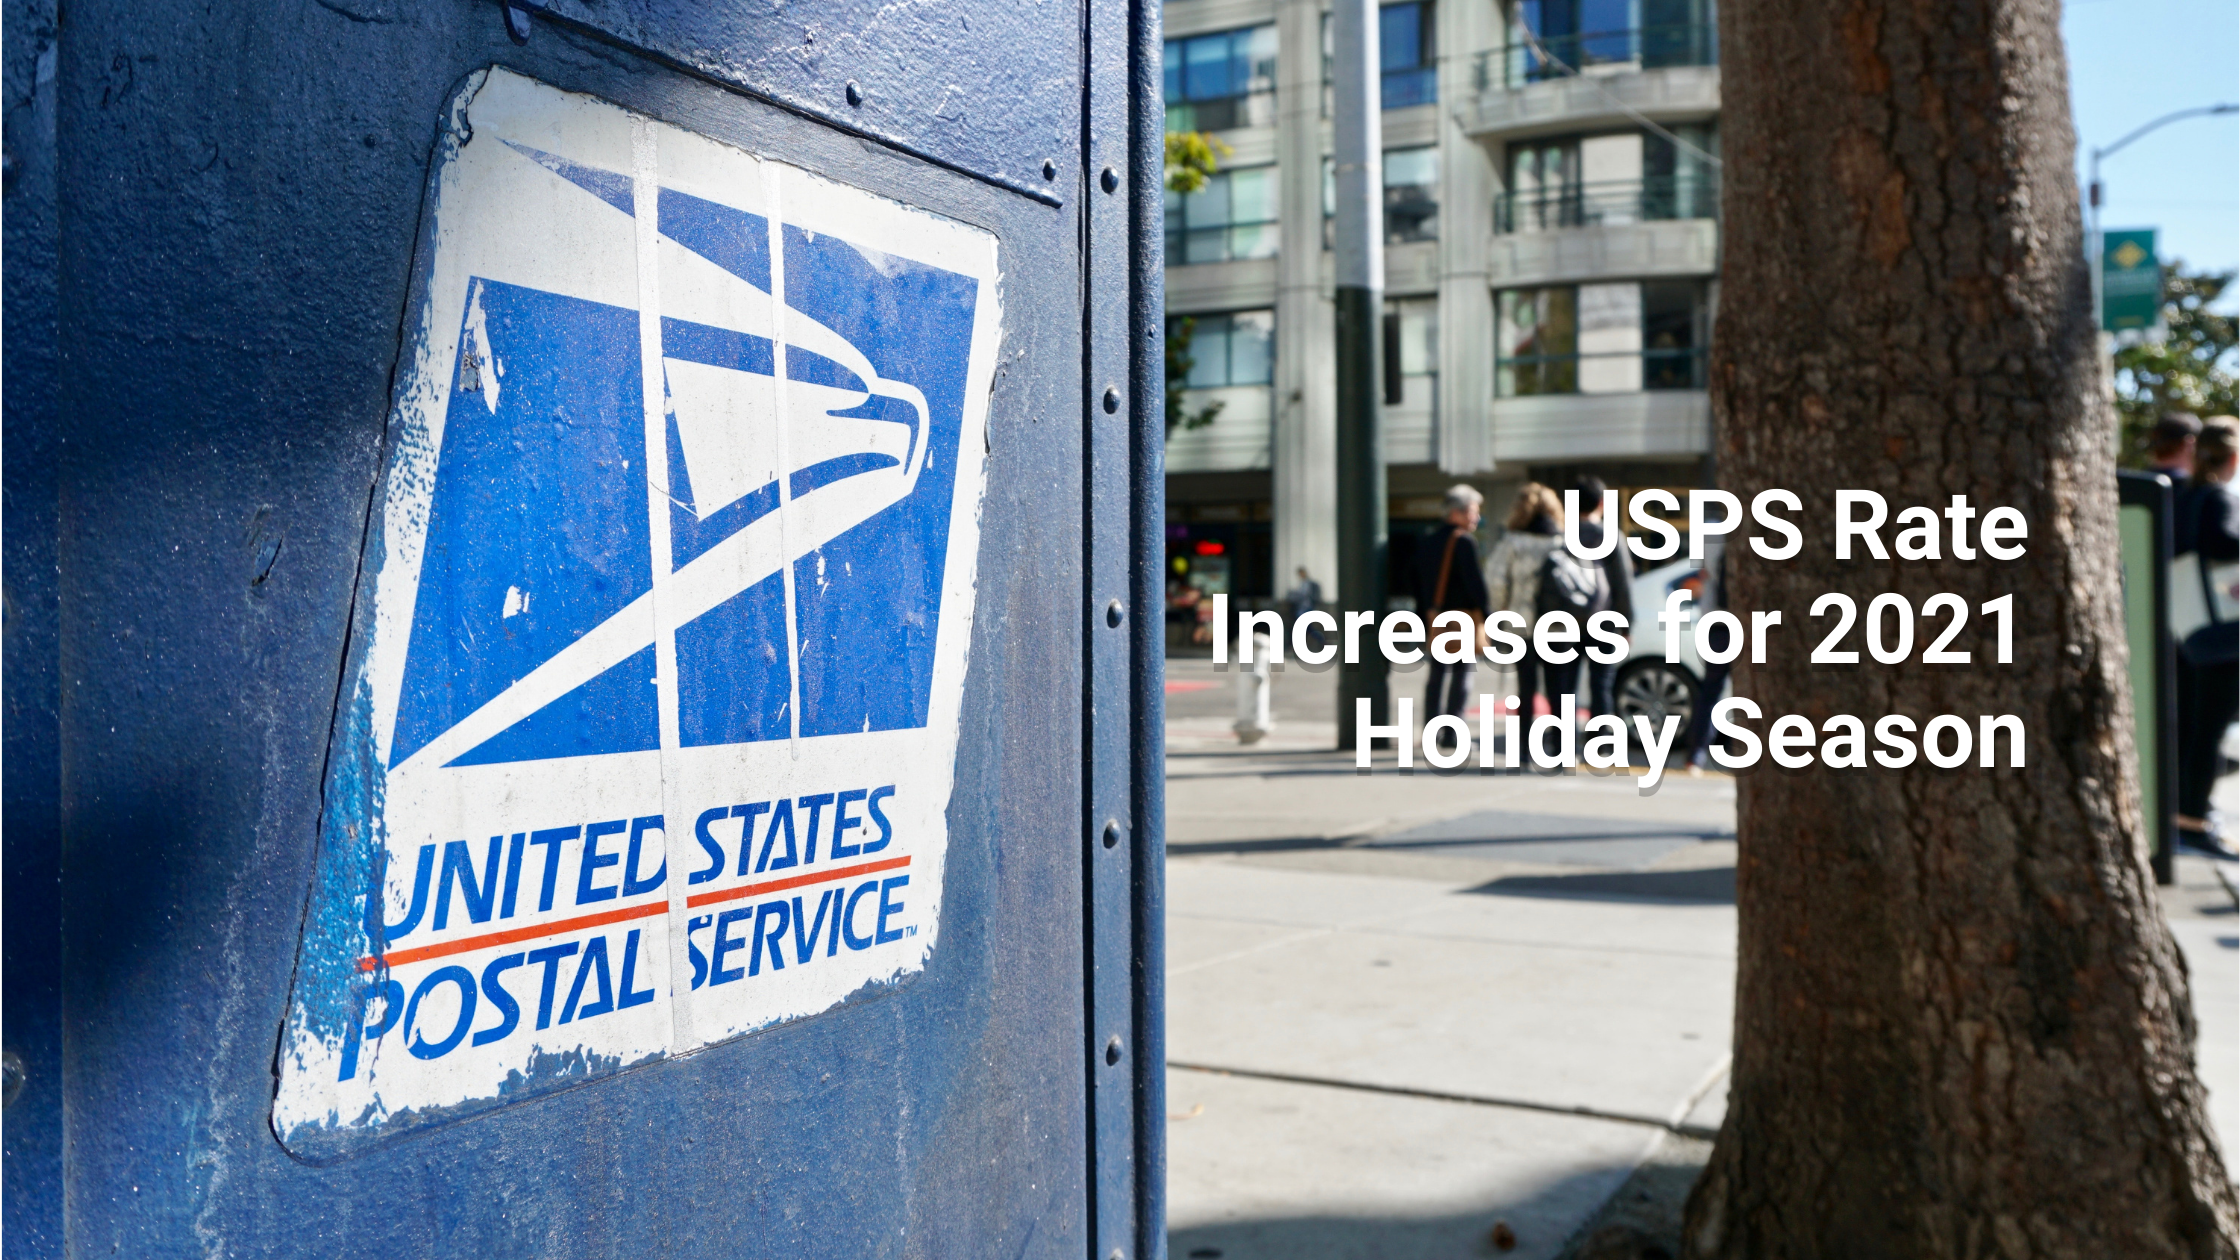 USPS Rate Increases for 2021 Holiday Season